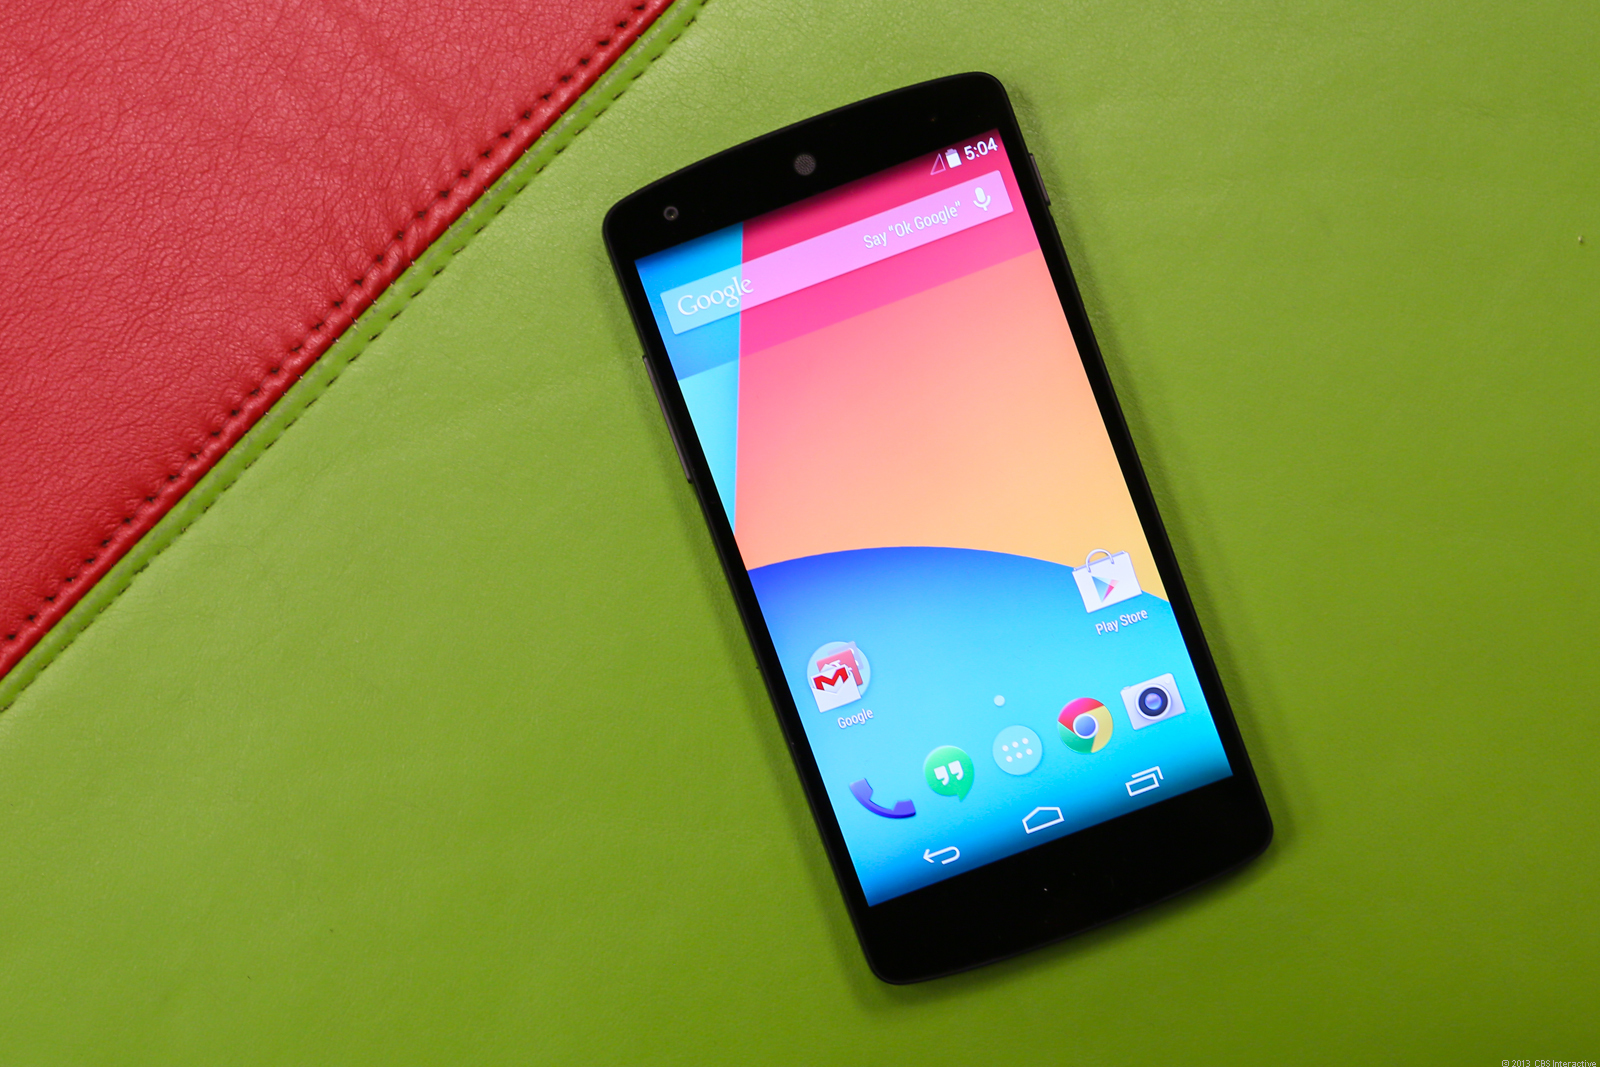 The LG-built Google Nexus 5 is the debut phone for Android 4.4, aka KitKat, which brings new Web standards to software programmers.